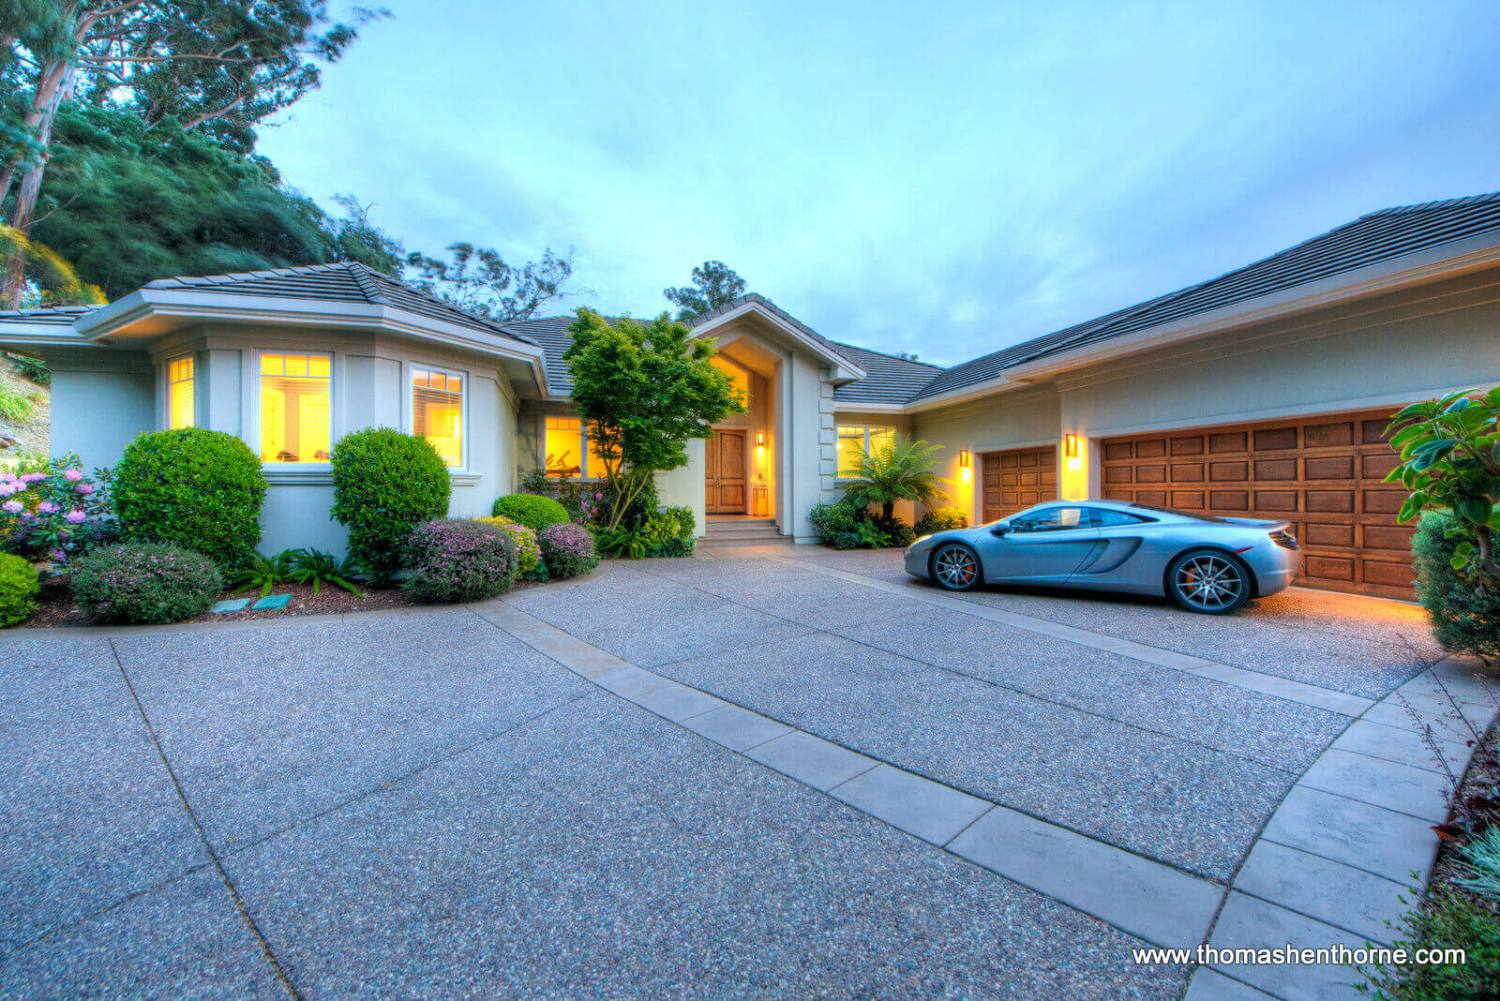 Front exterior of 87 Brodea Way San Rafael with McLaren